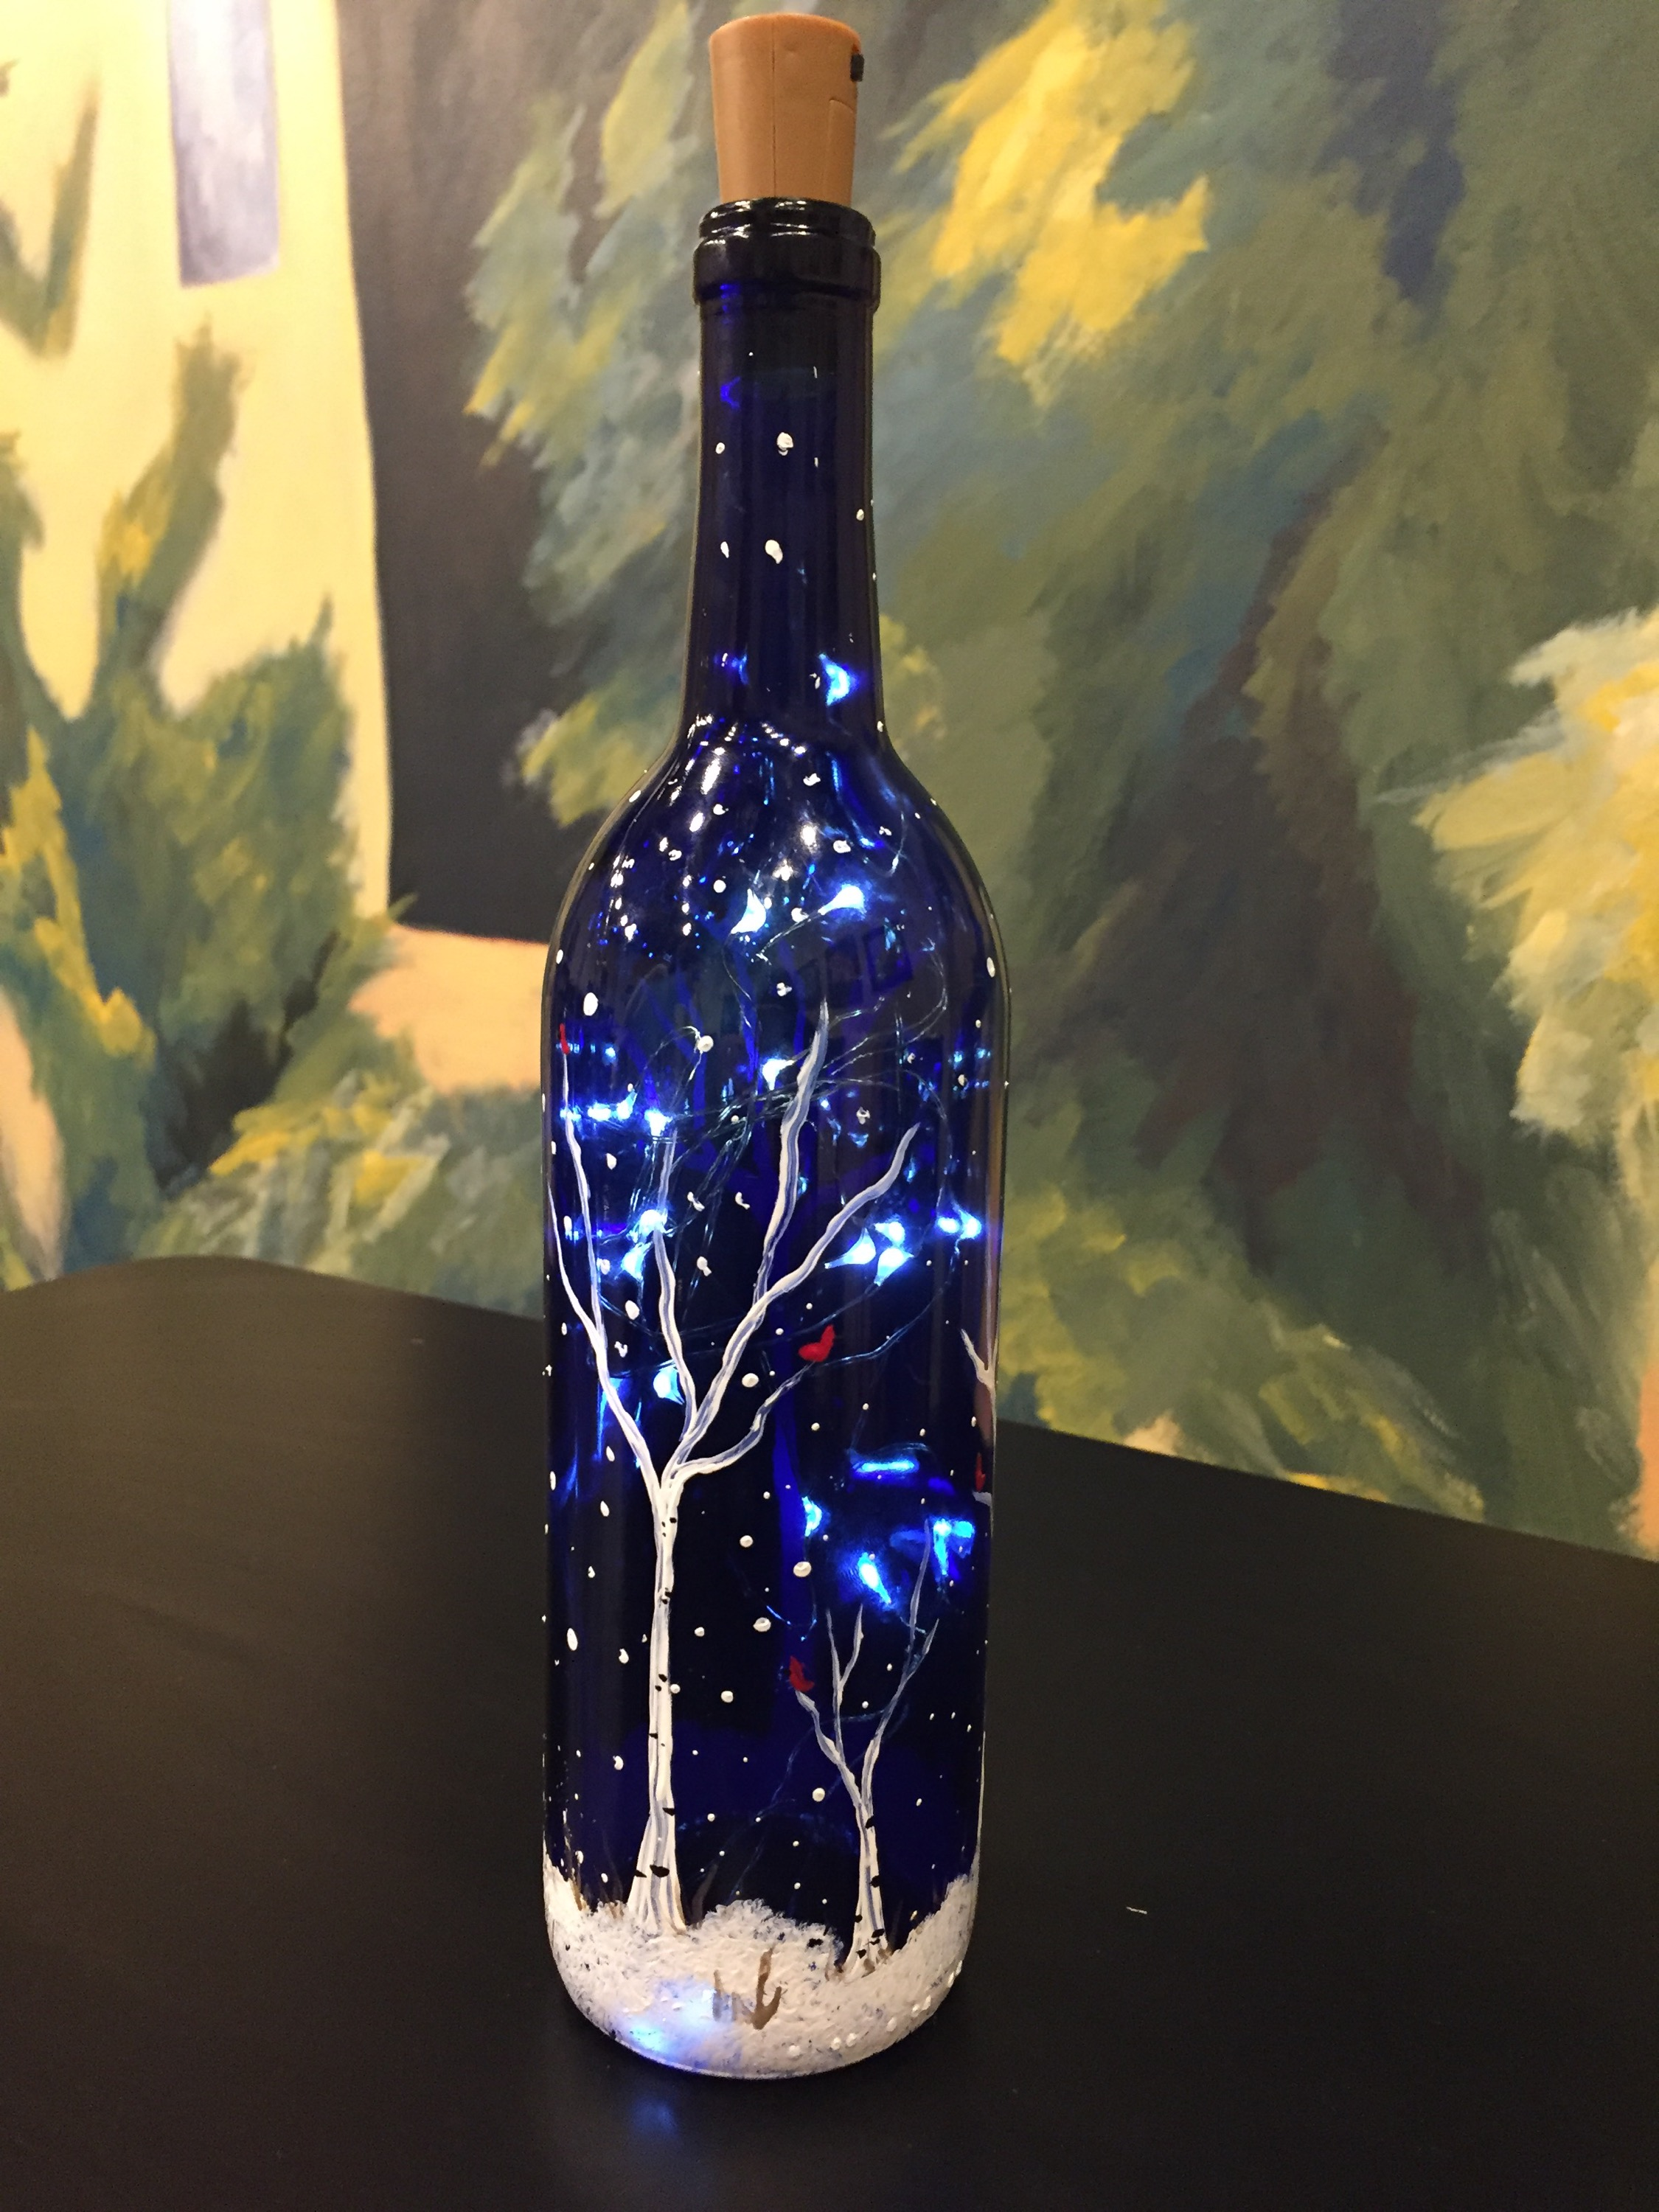 Painted & Illuminated Bottle